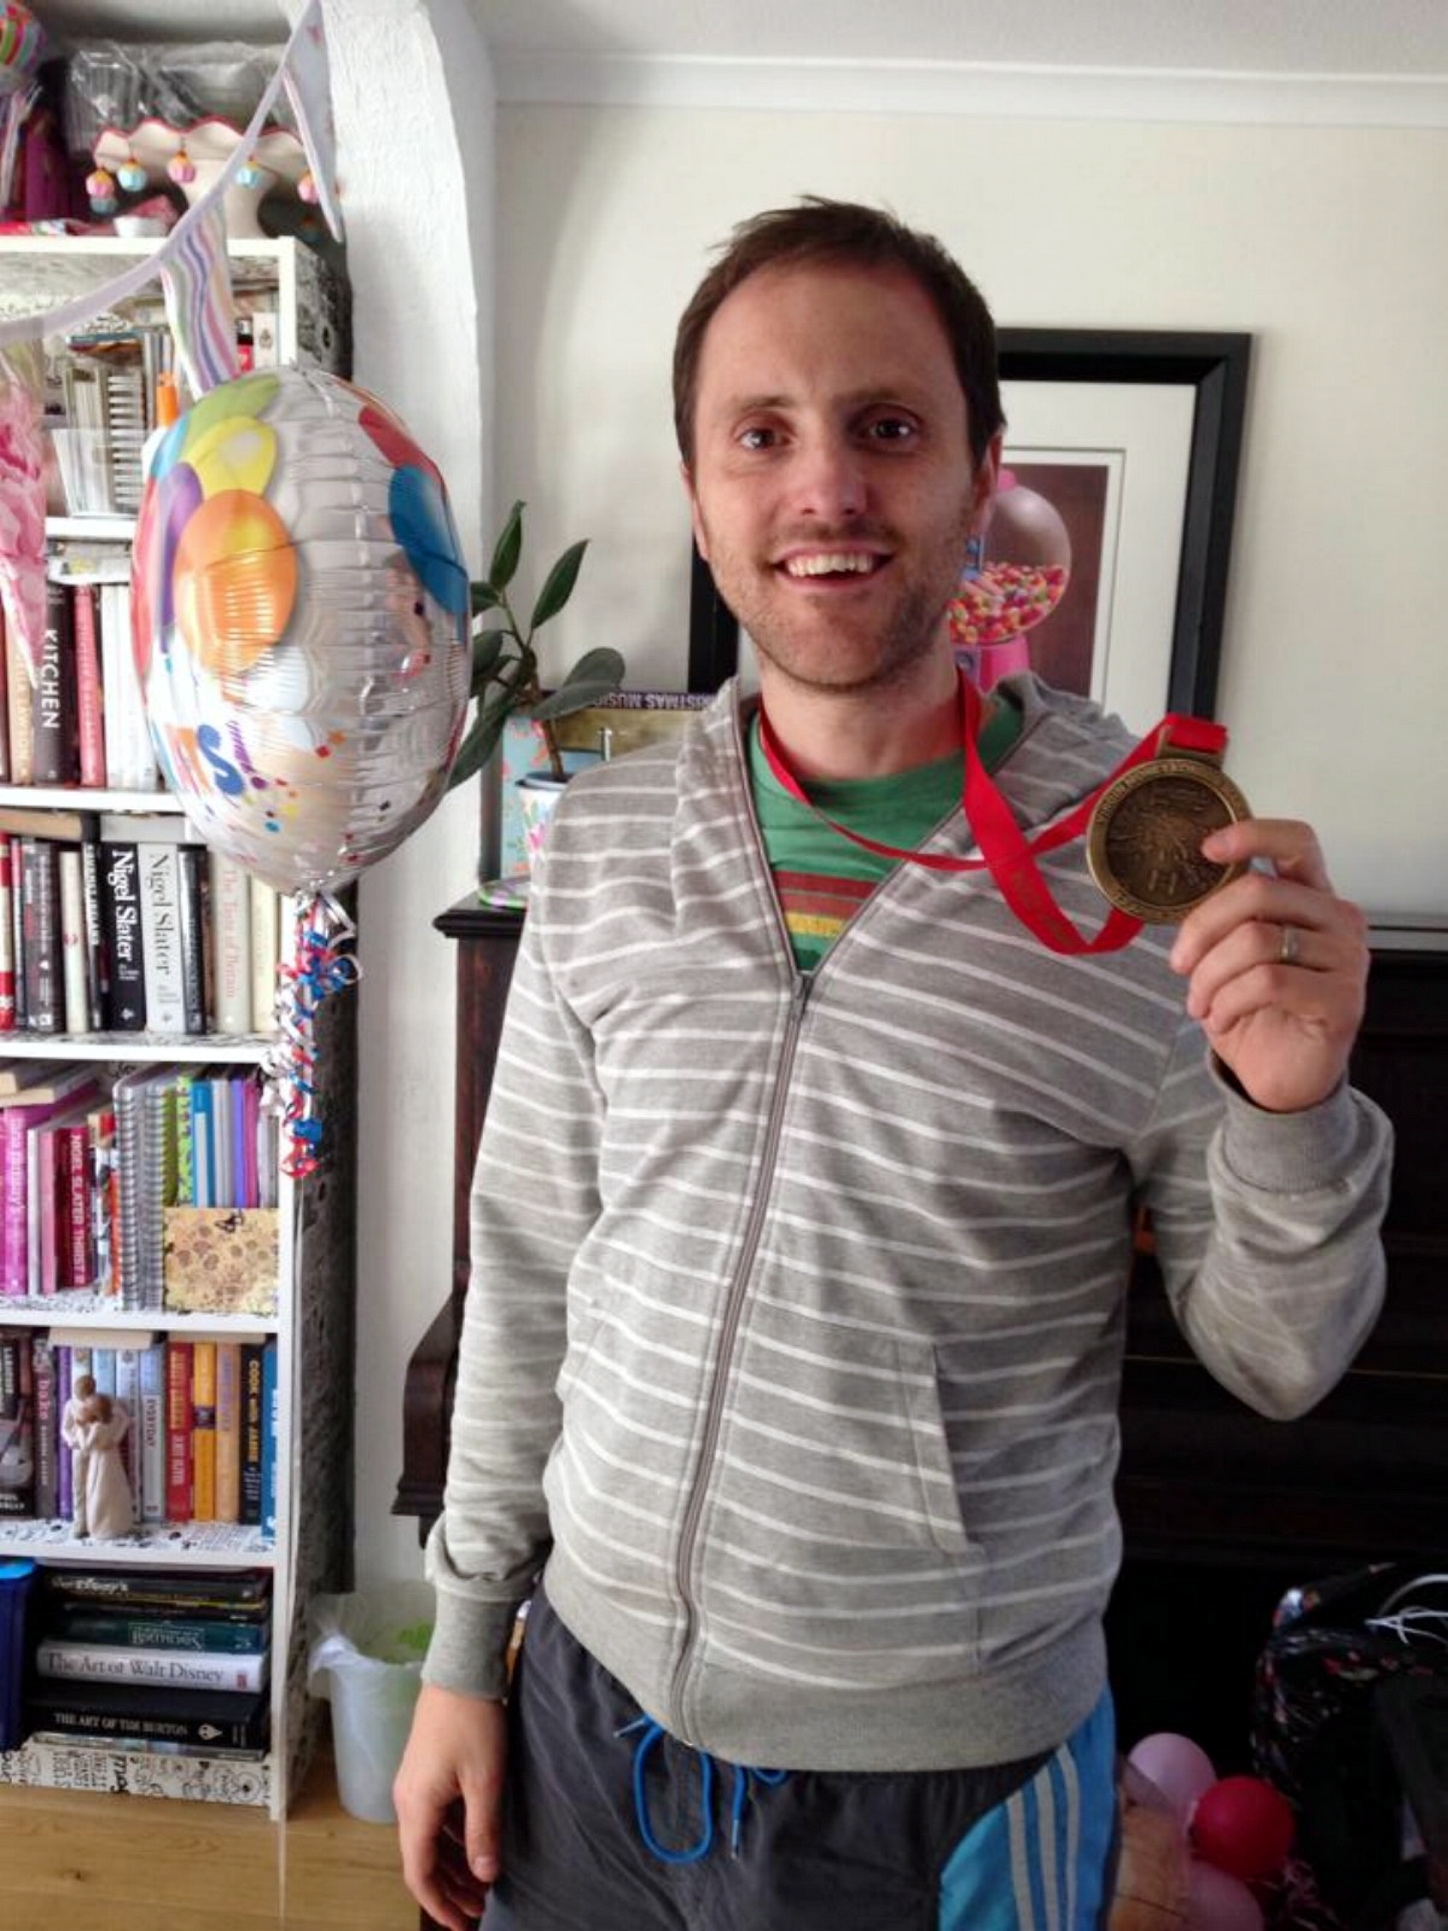 Paul Stamp back at home in Kempshott with his marathon medal.